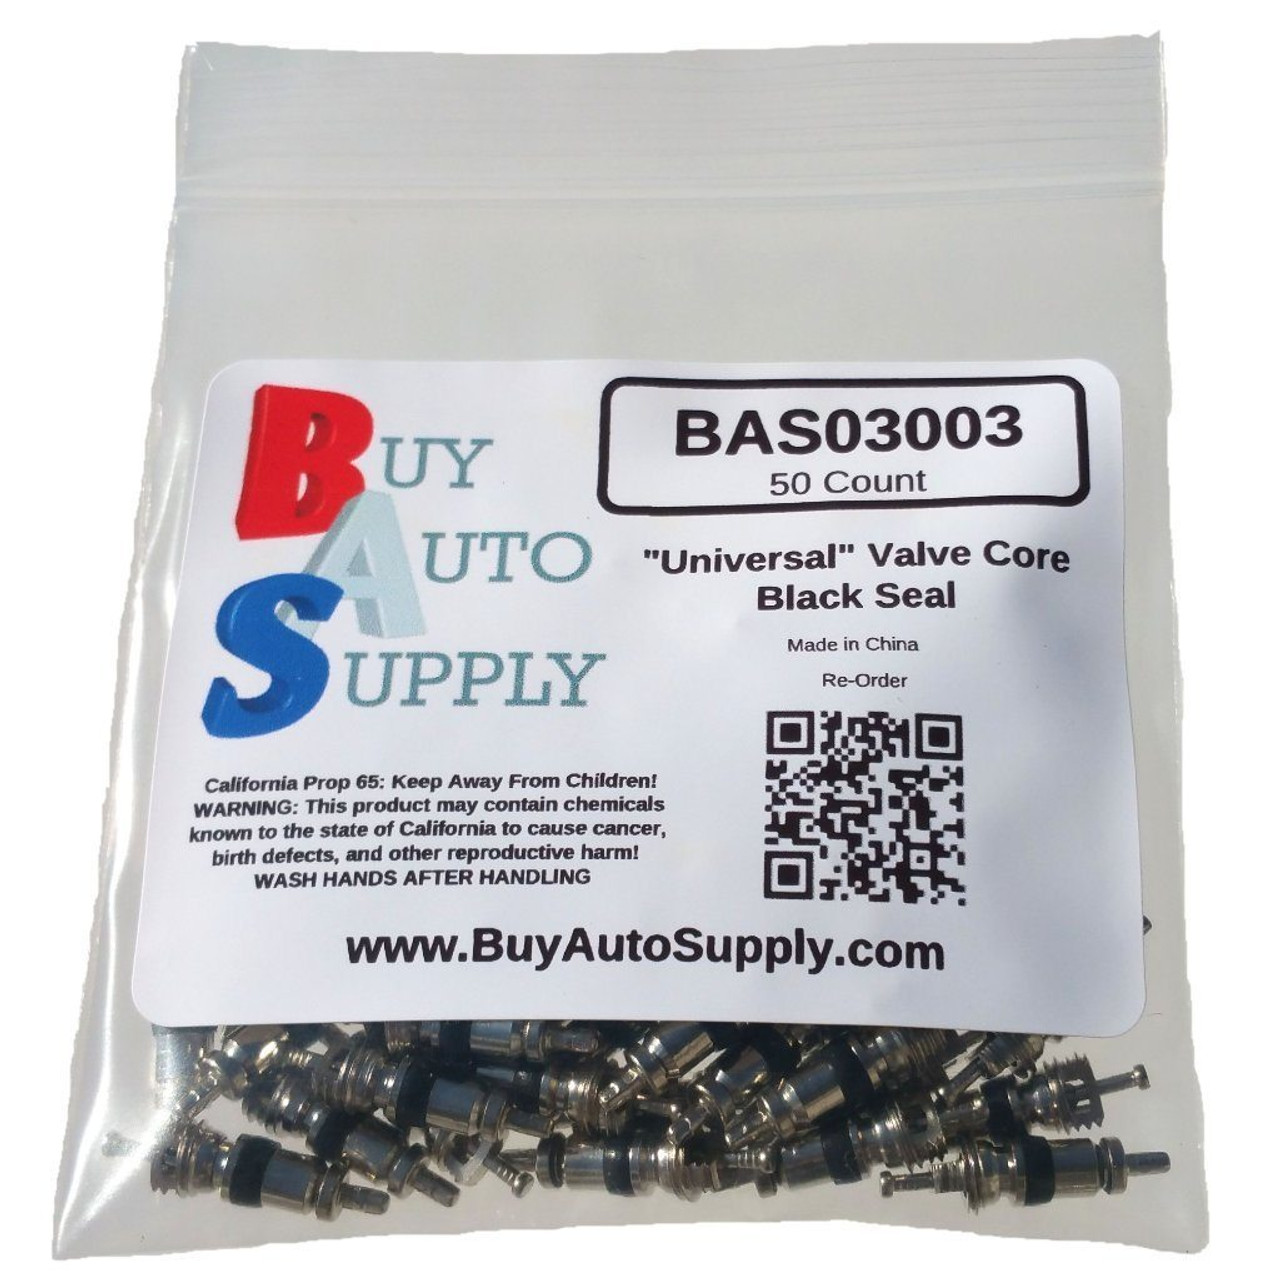 Bag of 50 A/C Schrader Valve Core - Black Seal - R12 and R134A